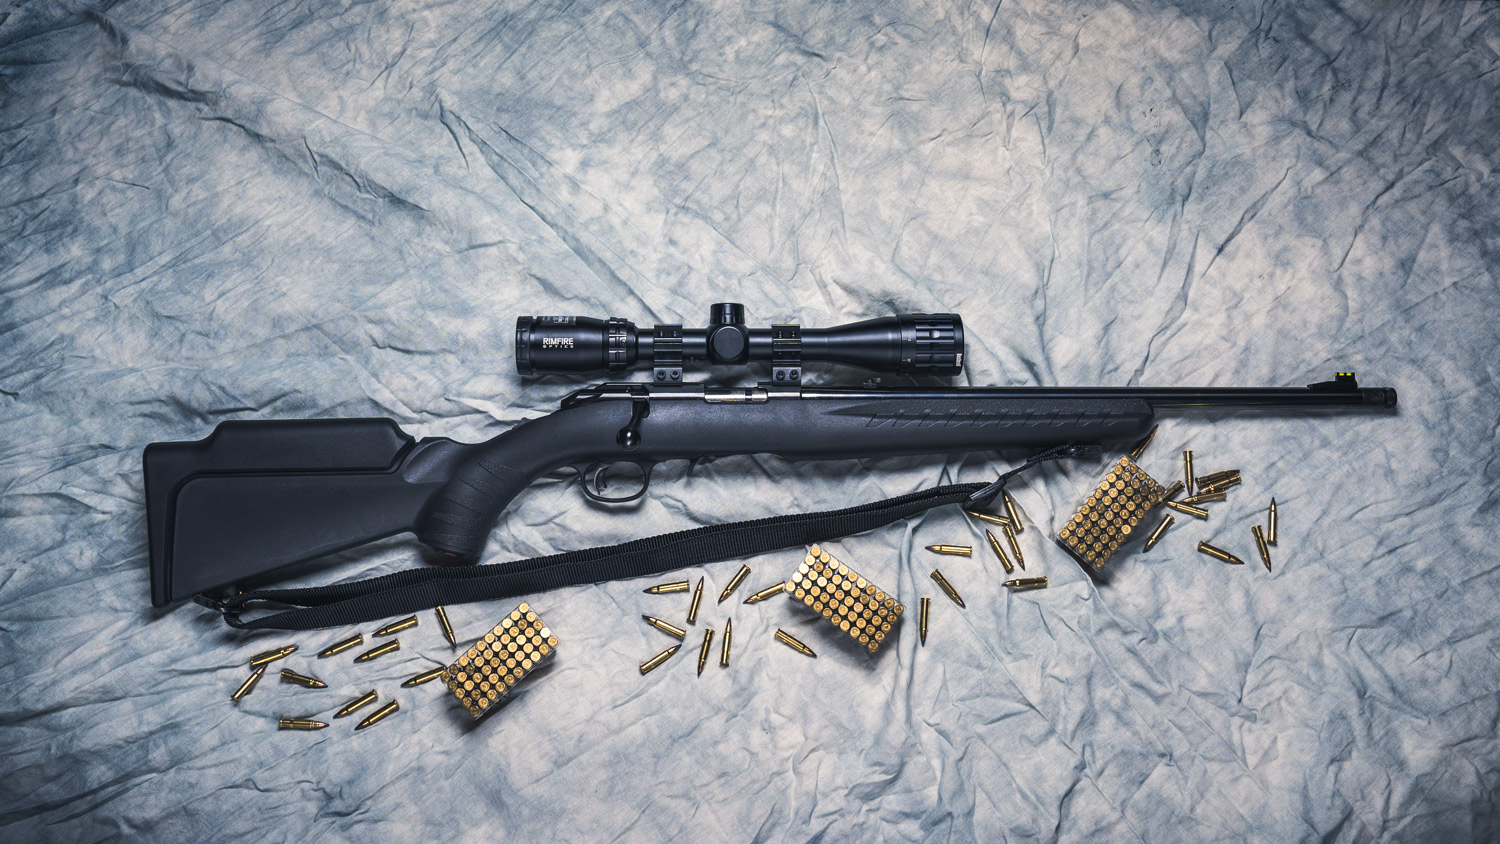 photo of a ruger rimfire rifle with ammo